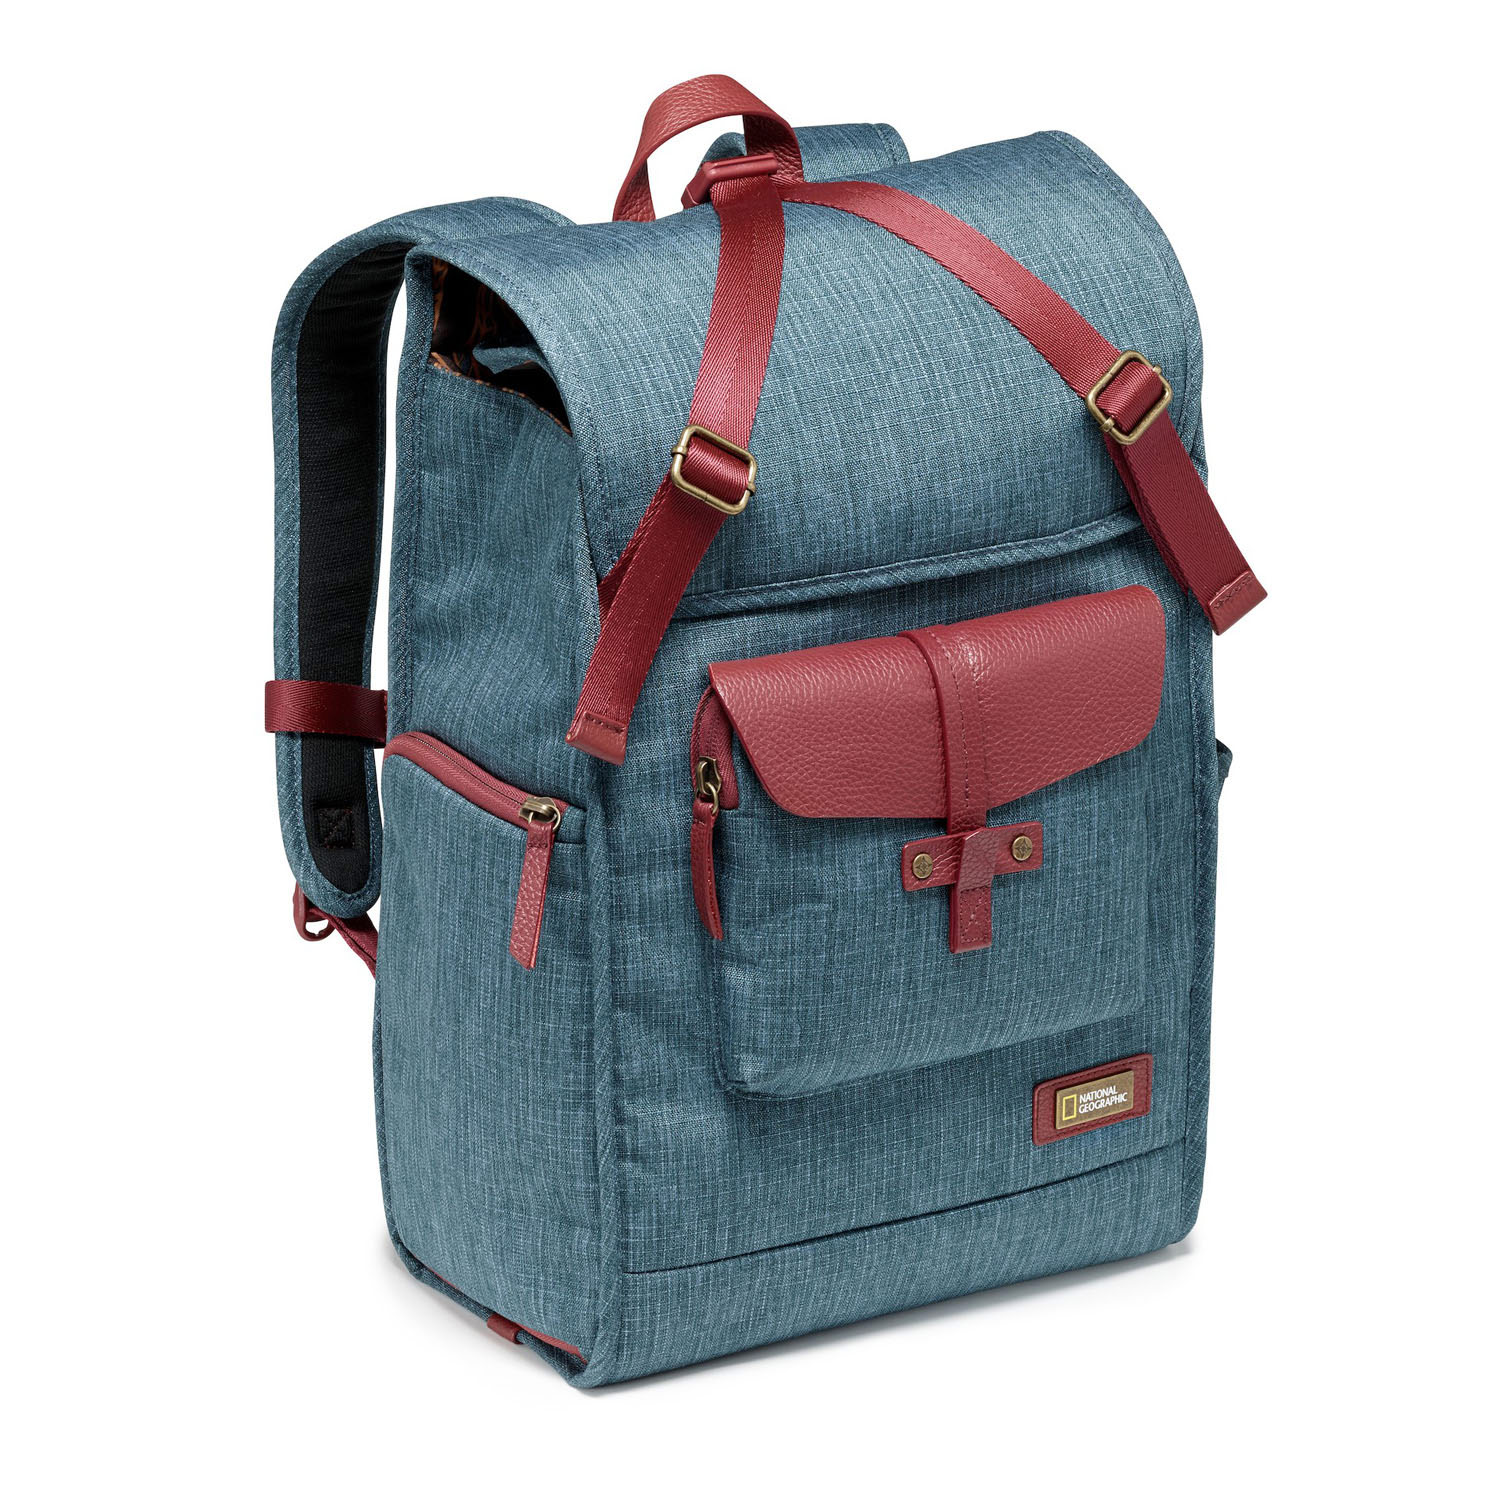 National Geographic Australia Rear Backpack